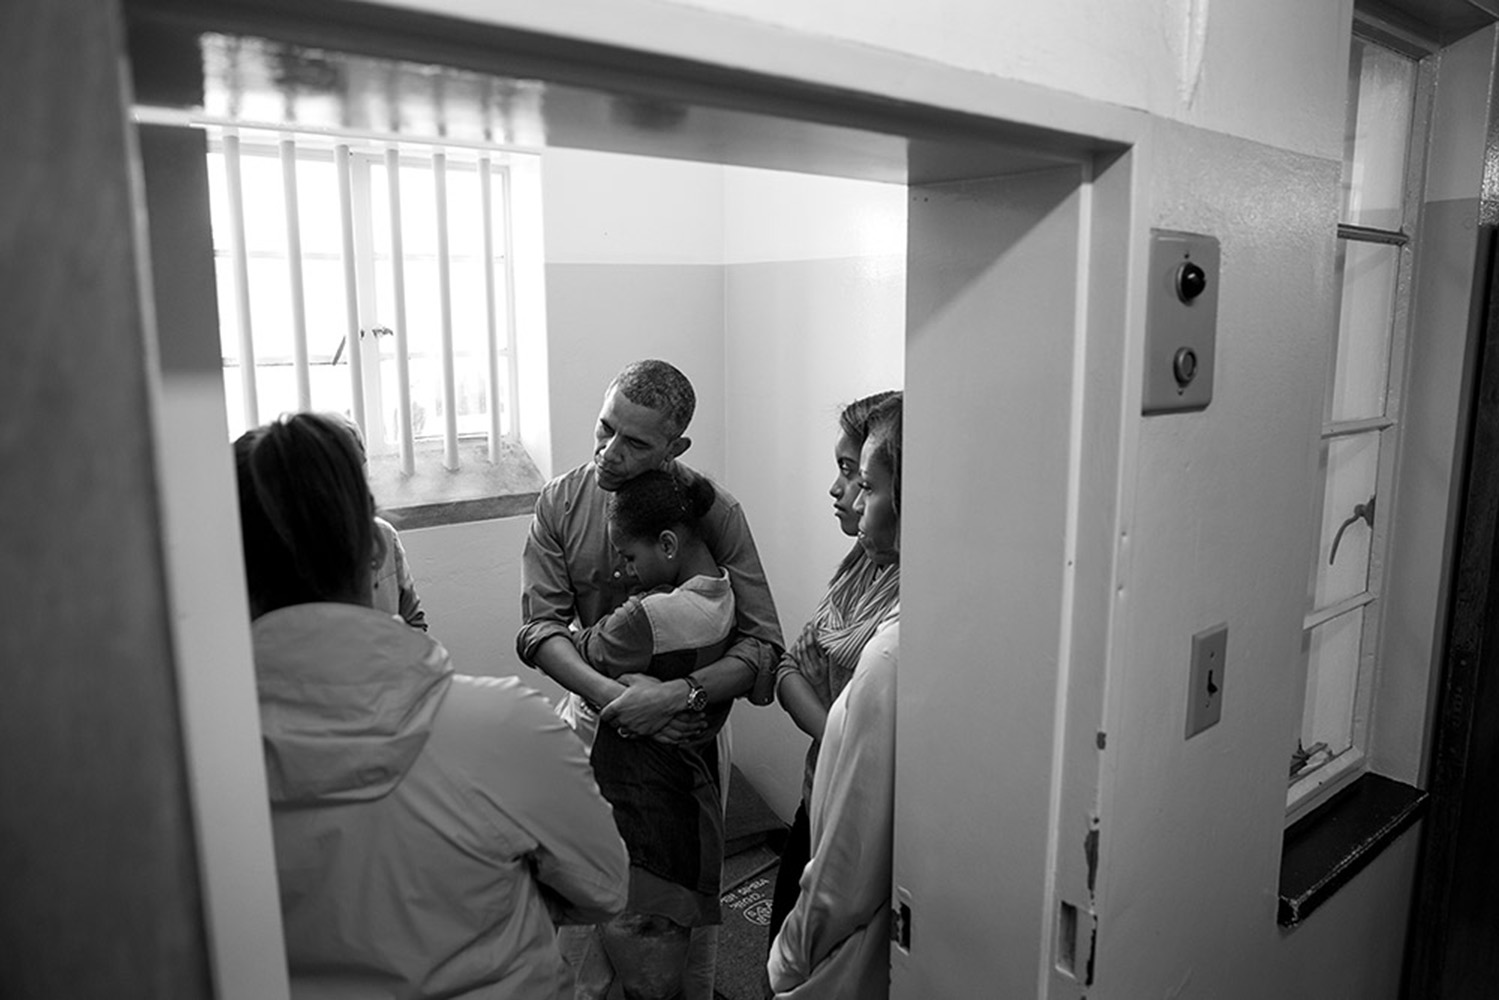 June 30, 2013. In this photo provided by the White House, President Barack Obama and First Lady Michelle Obama, along with daughters Sasha and Malia, stand in former South African President Nelson Mandela's cell as they listen to former prisoner Ahmed Kathrada during their tour of Robben Island Prison on Robben Island in Cape Town, South Africa.